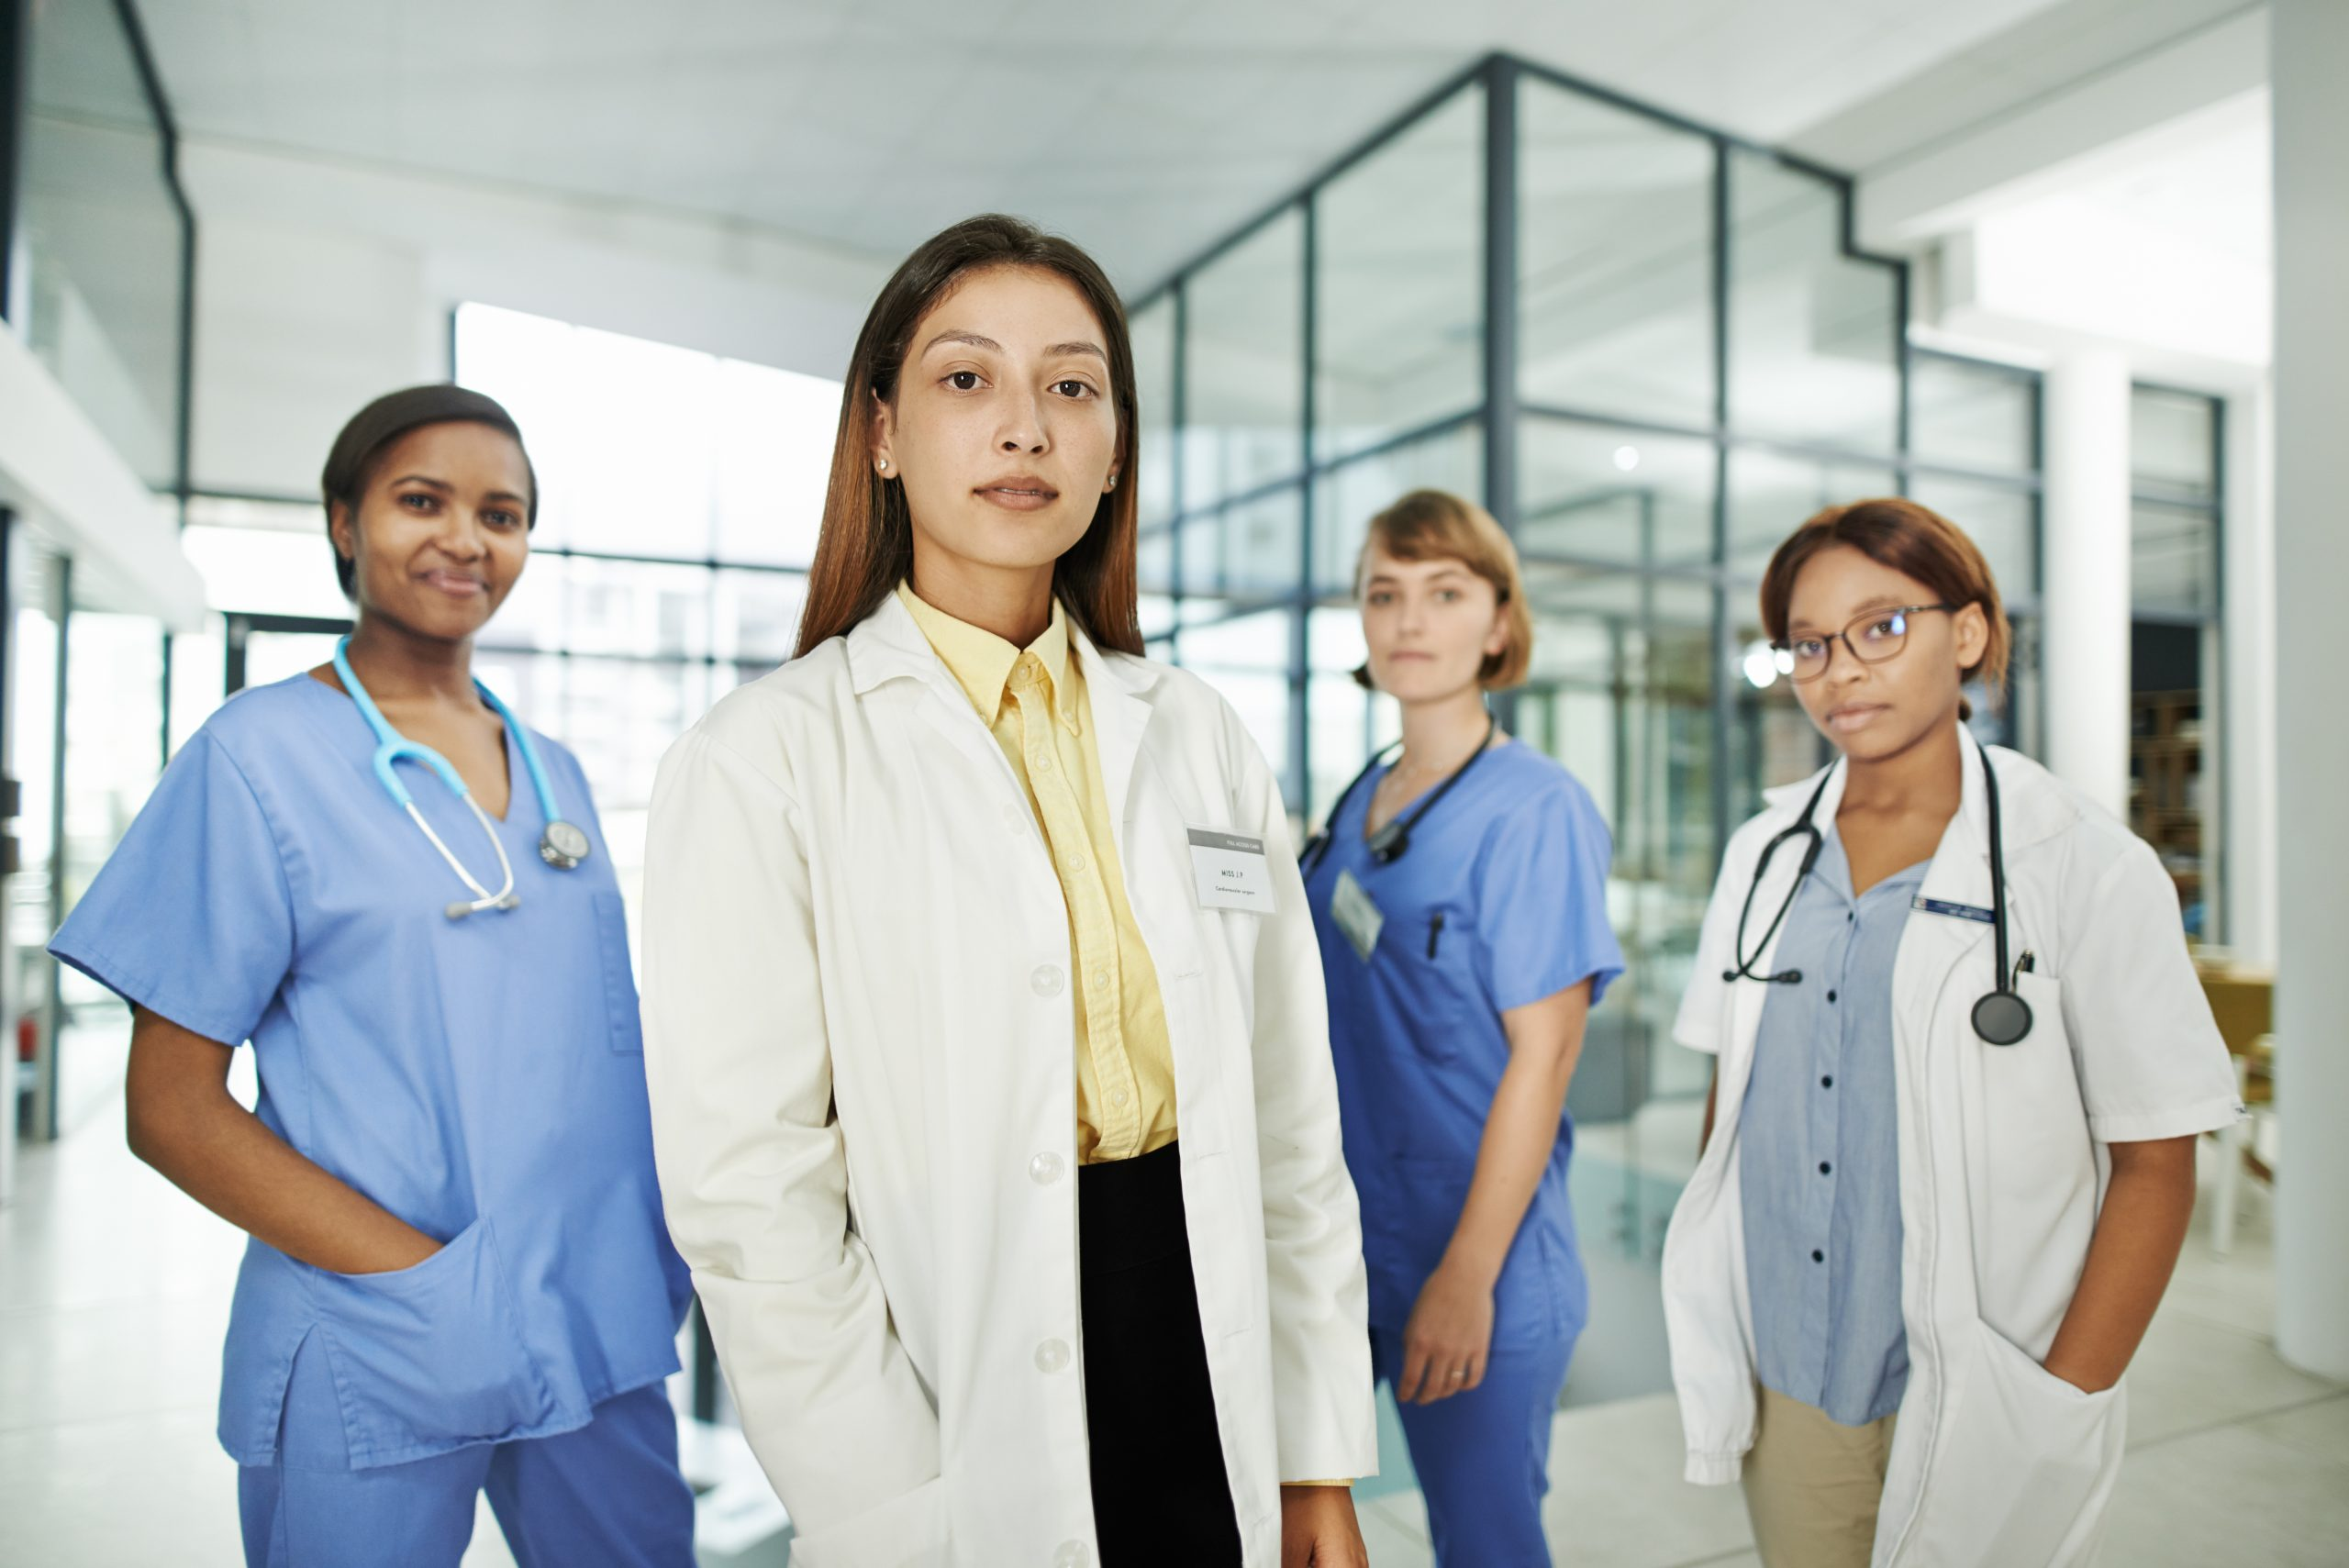 Multi-ethnic group of female health workers representing women in medicine